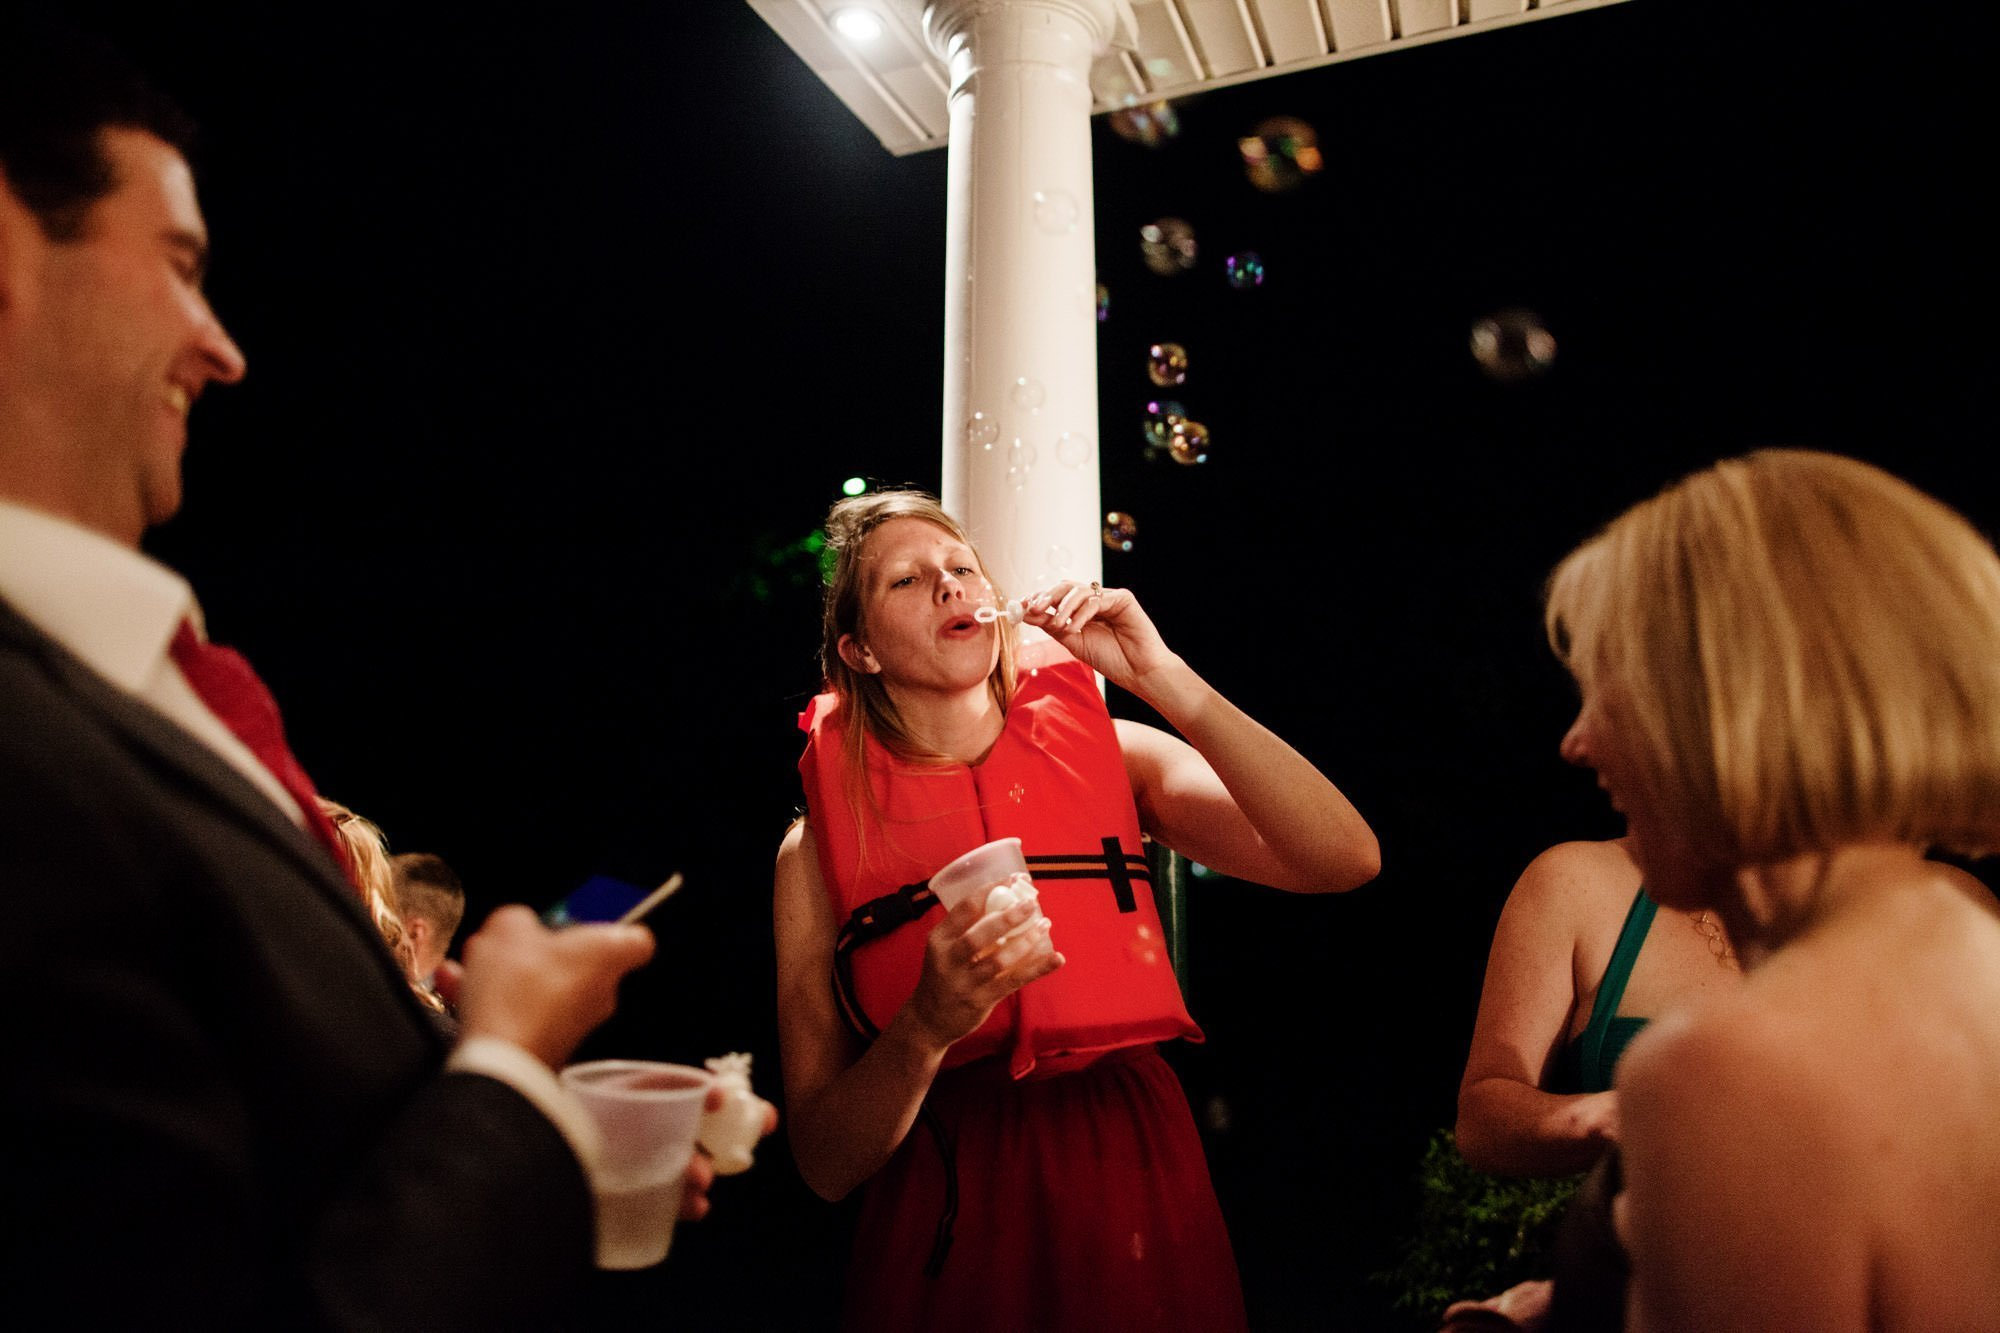 Guests blow bubbles during the wedding reception.